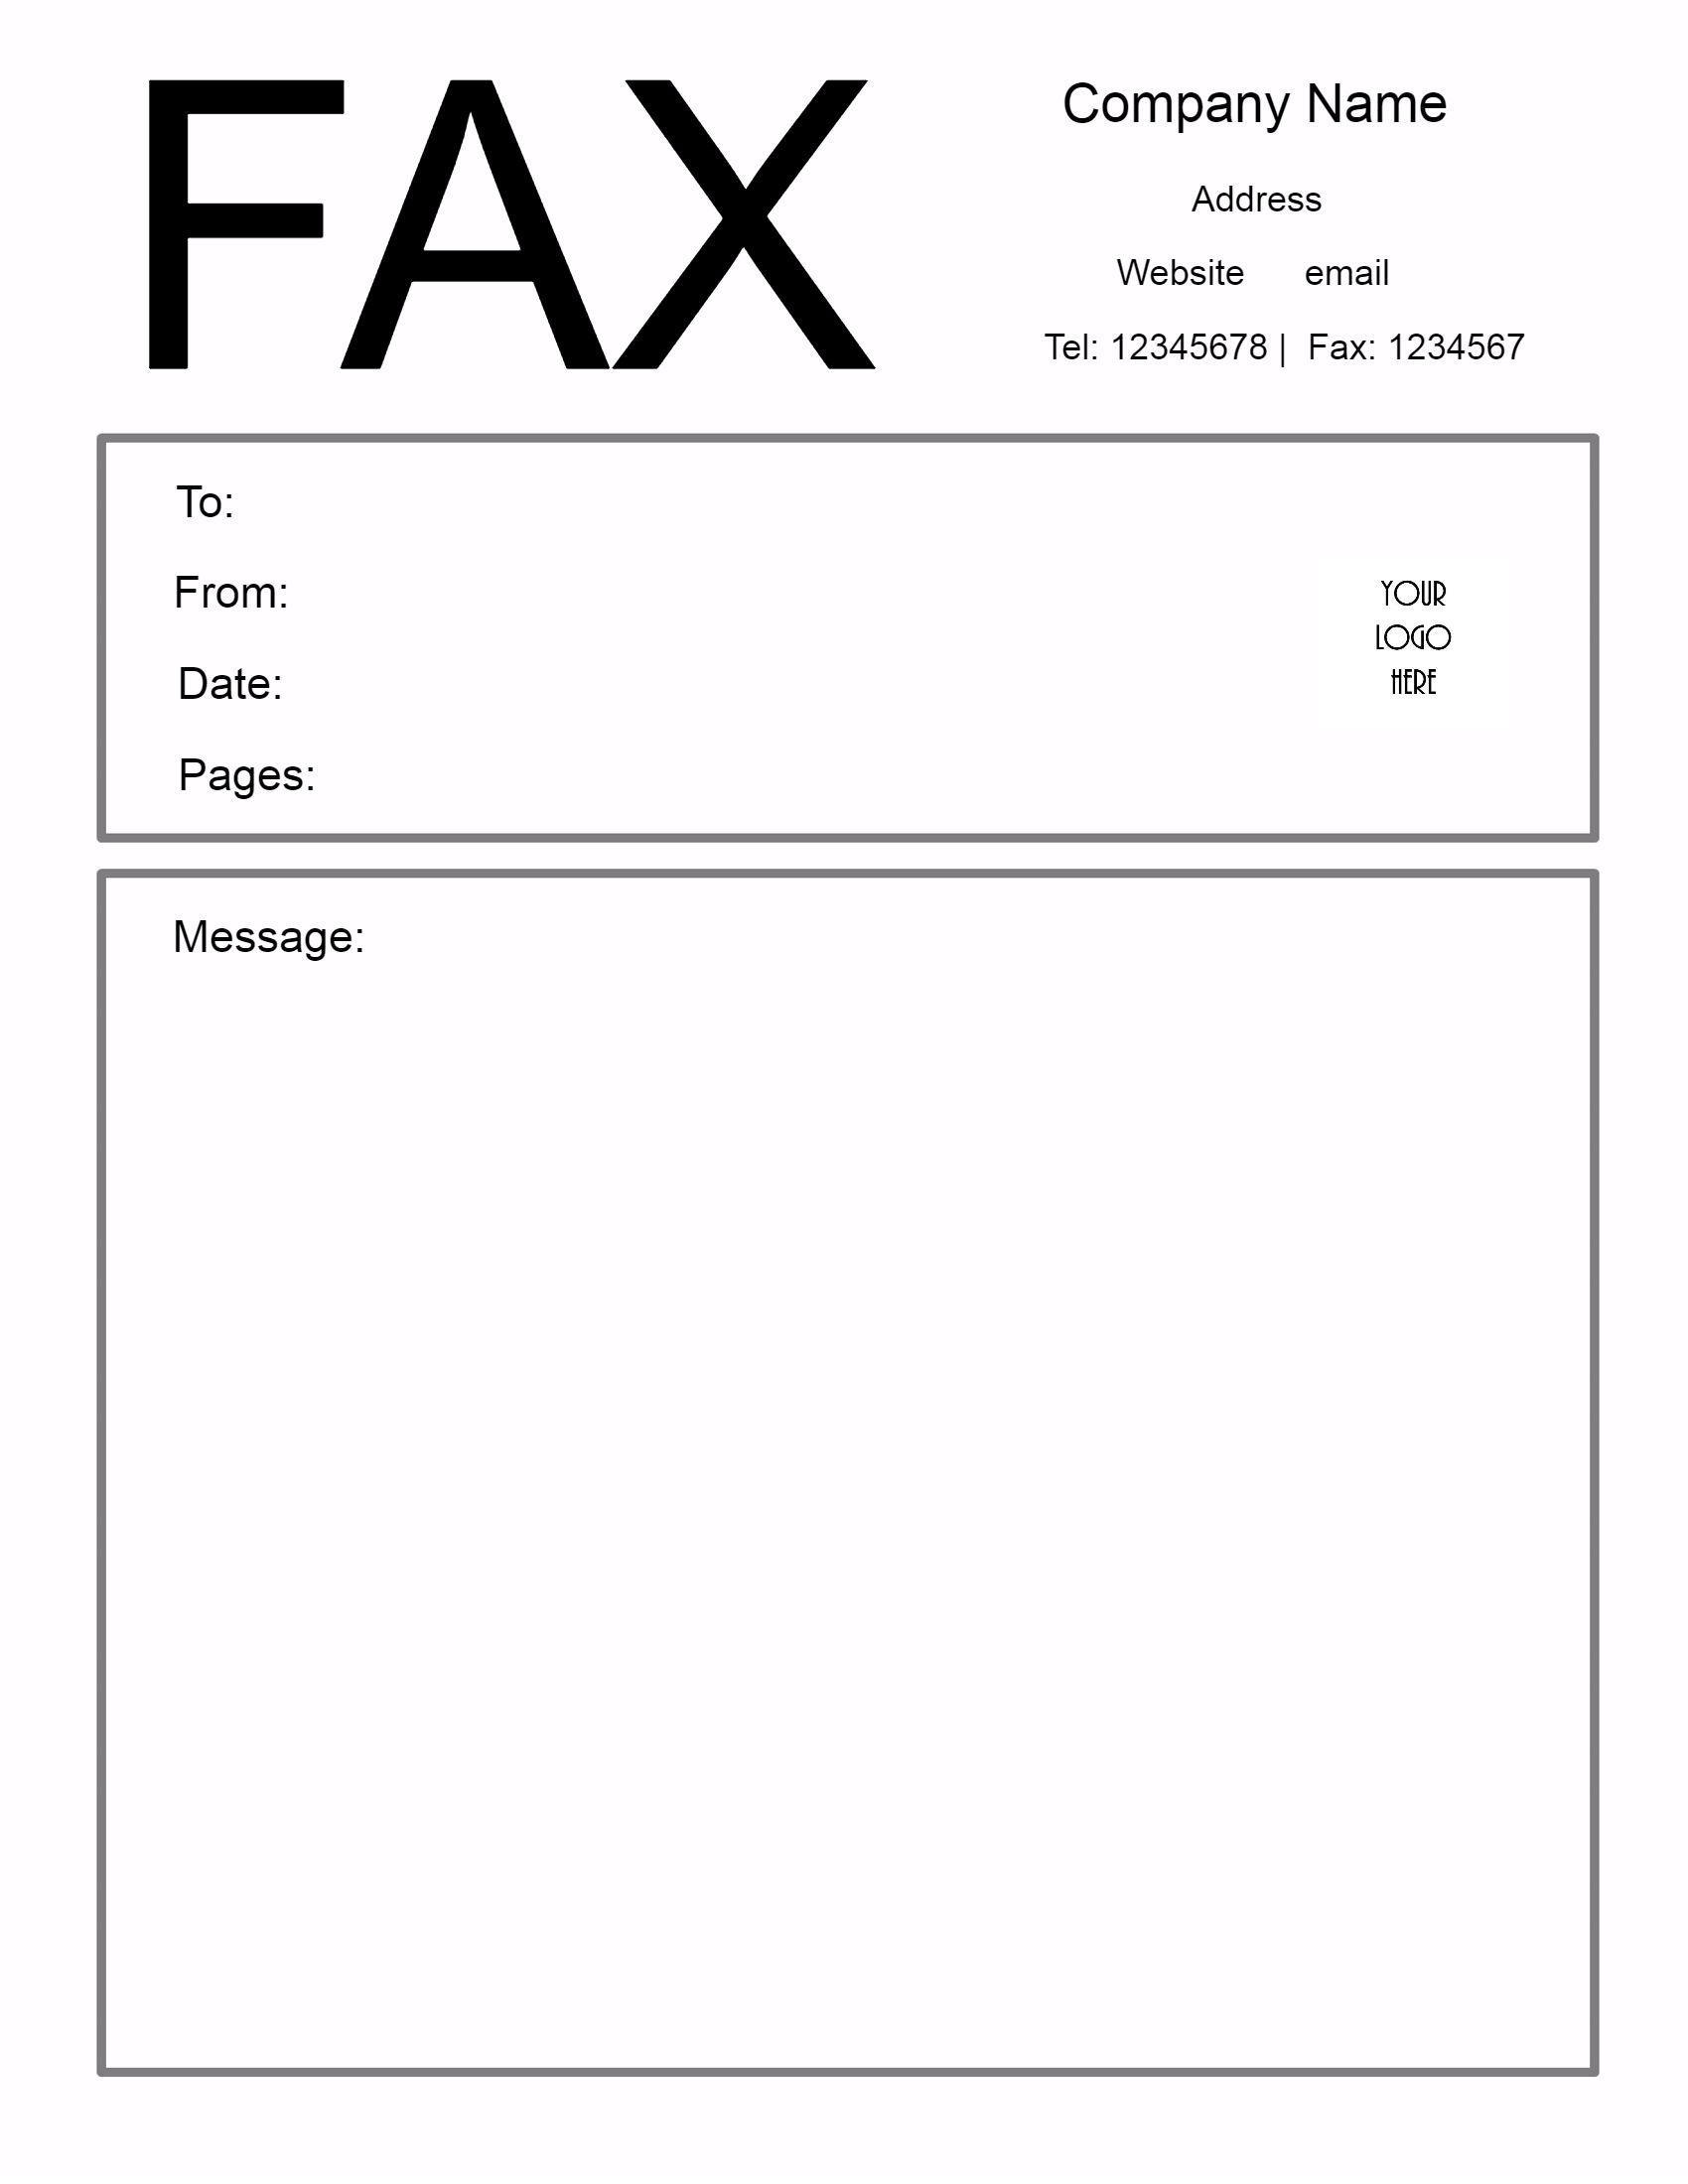 sample fax cover